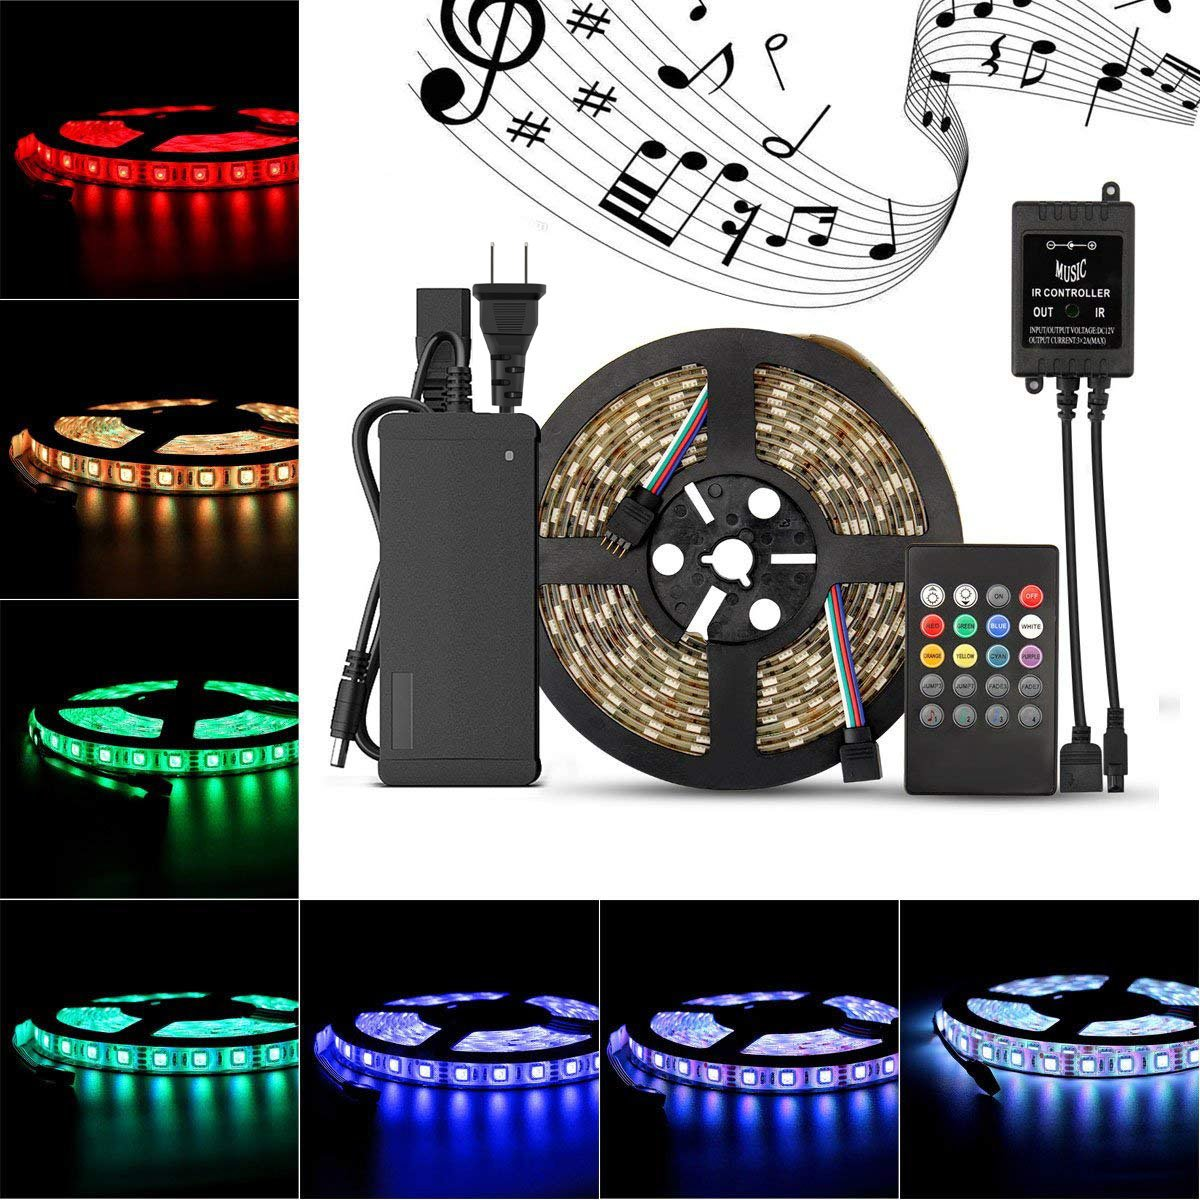 SUPERNIGHT 5M/16.4 Ft 5050SMD RGB Music Controlled 300 LEDS Strip Light Kit Waterproof Flexible LED Light with Music Controller Sound Sense Controller + 12V 5A Power Supply